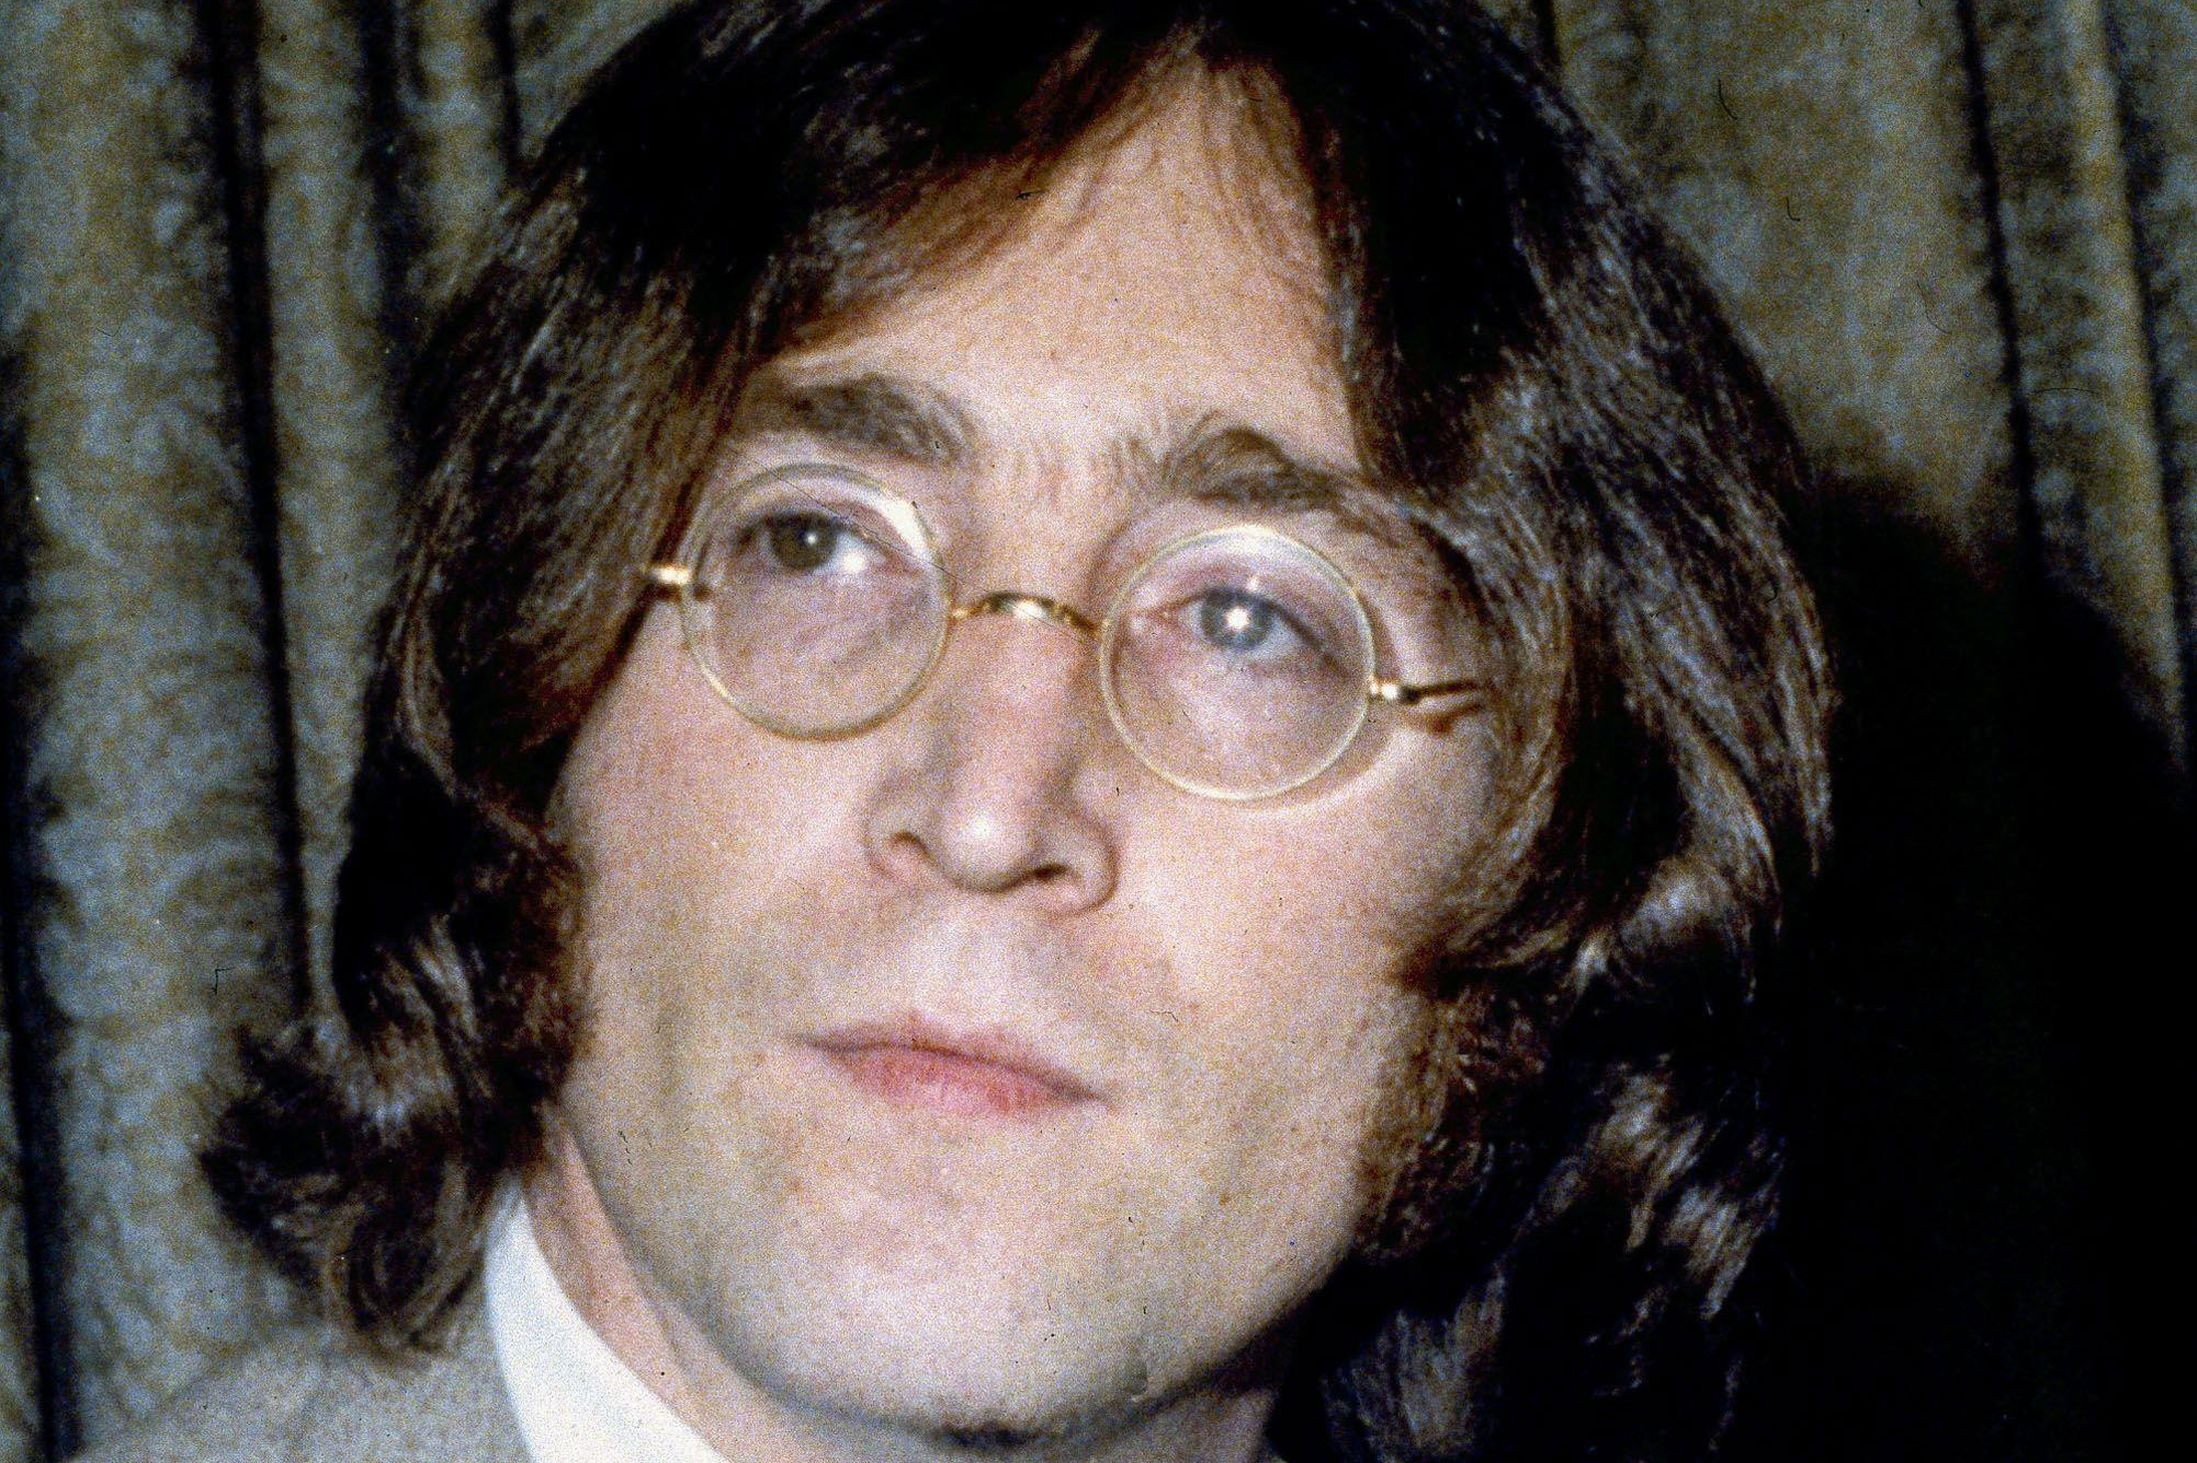 Pictures John Lennon remembered on his 74th birthday